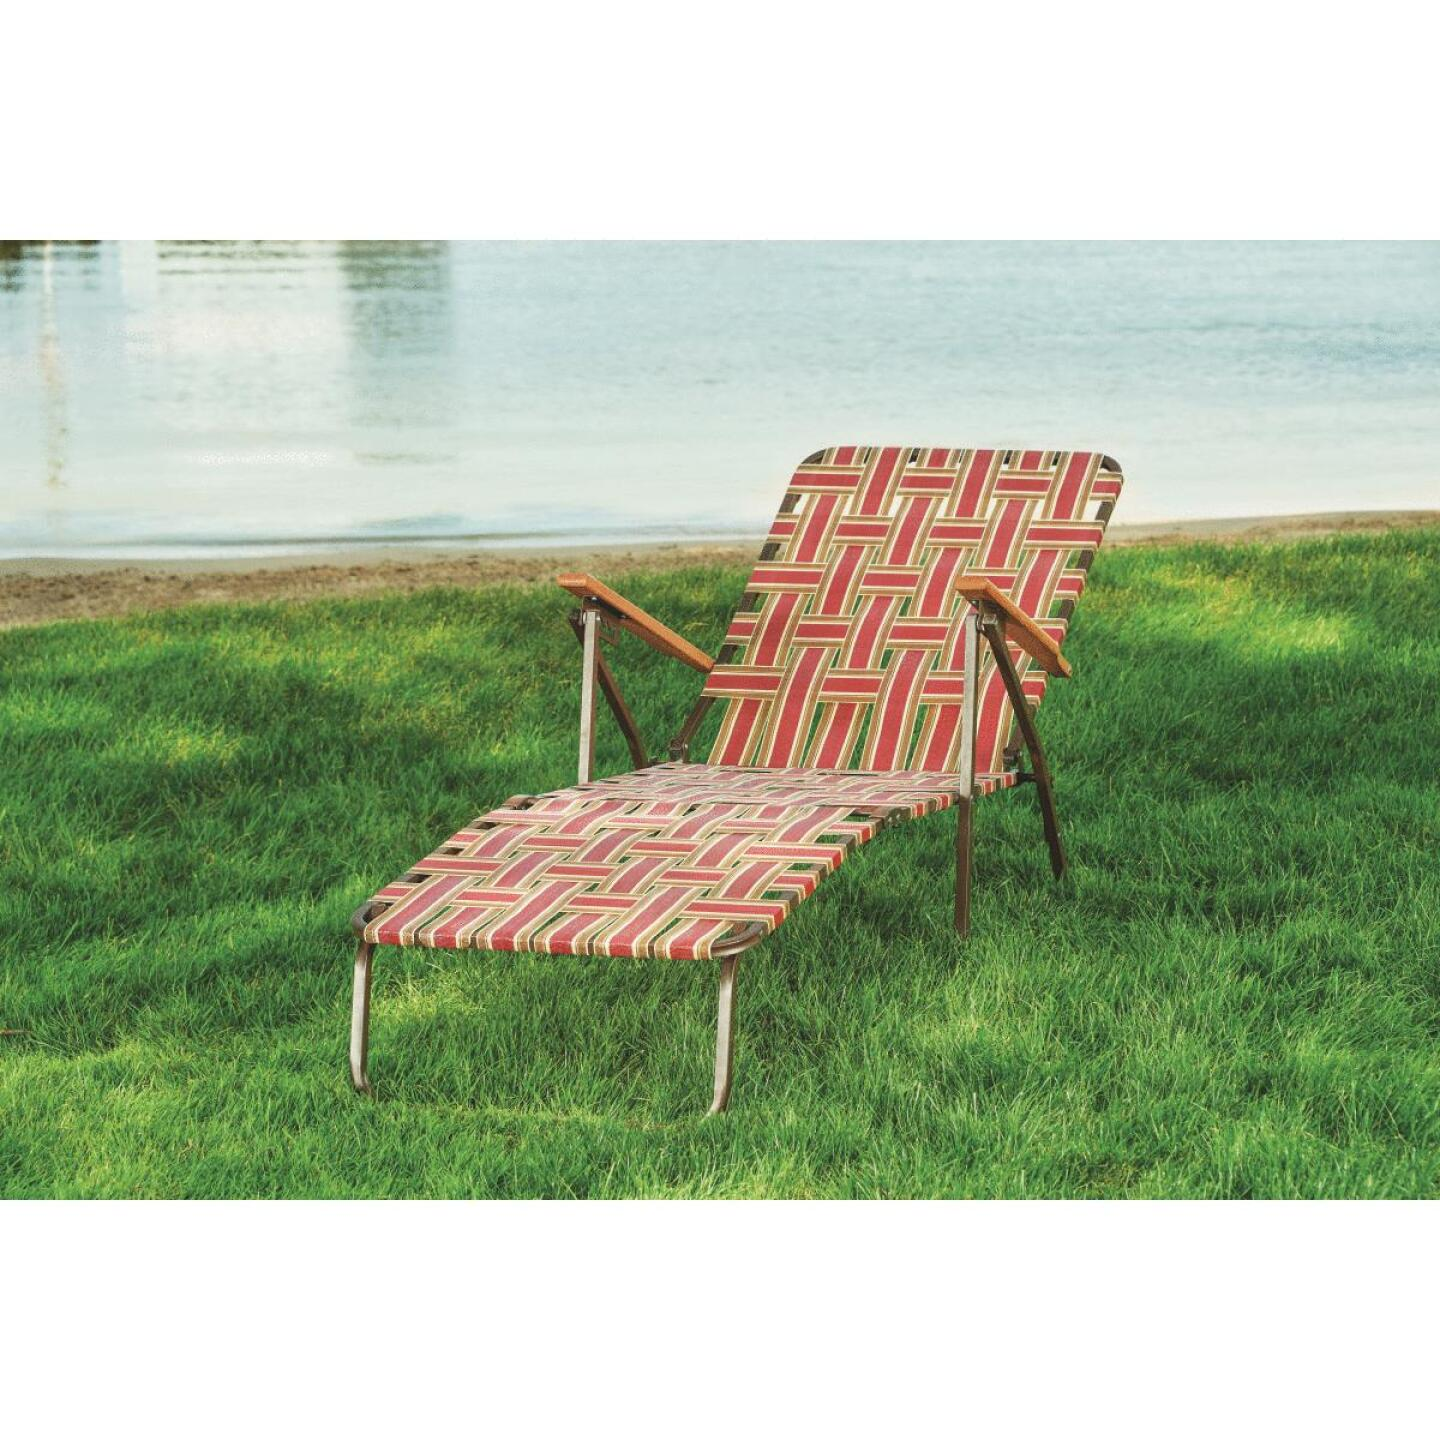 Outdoor Expressions Rust & Beige Web Chaise Lounge Image 4